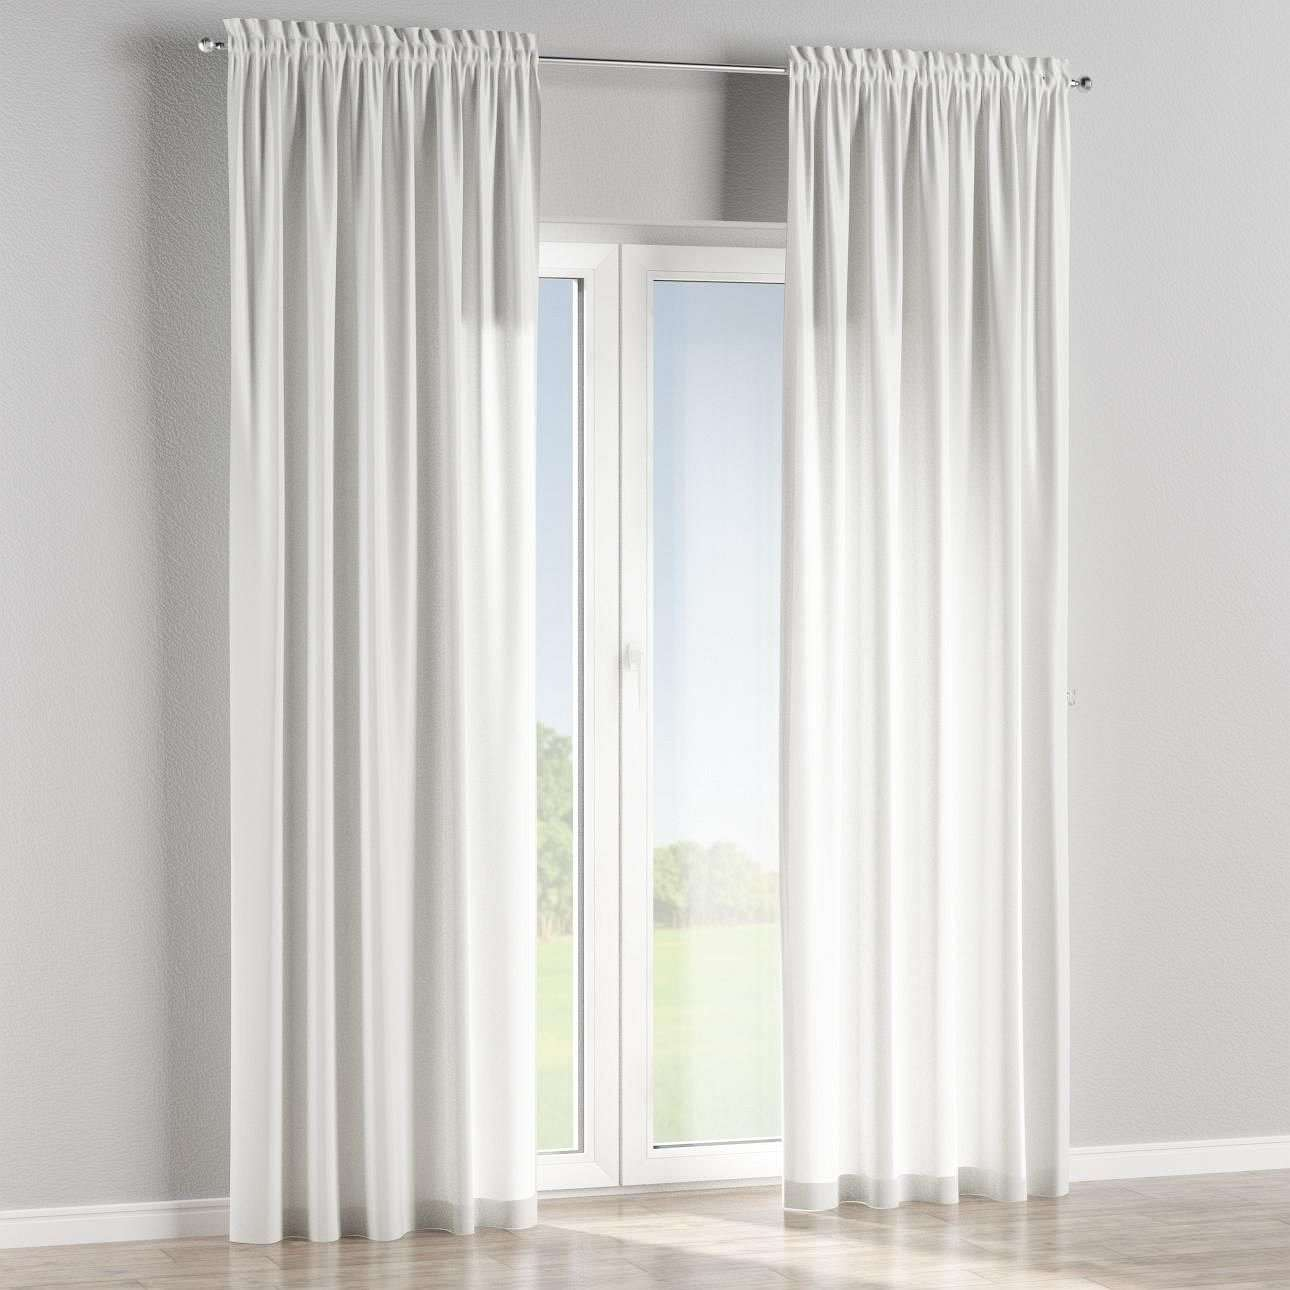 Slot and frill curtains in collection Ashley, fabric: 137-45